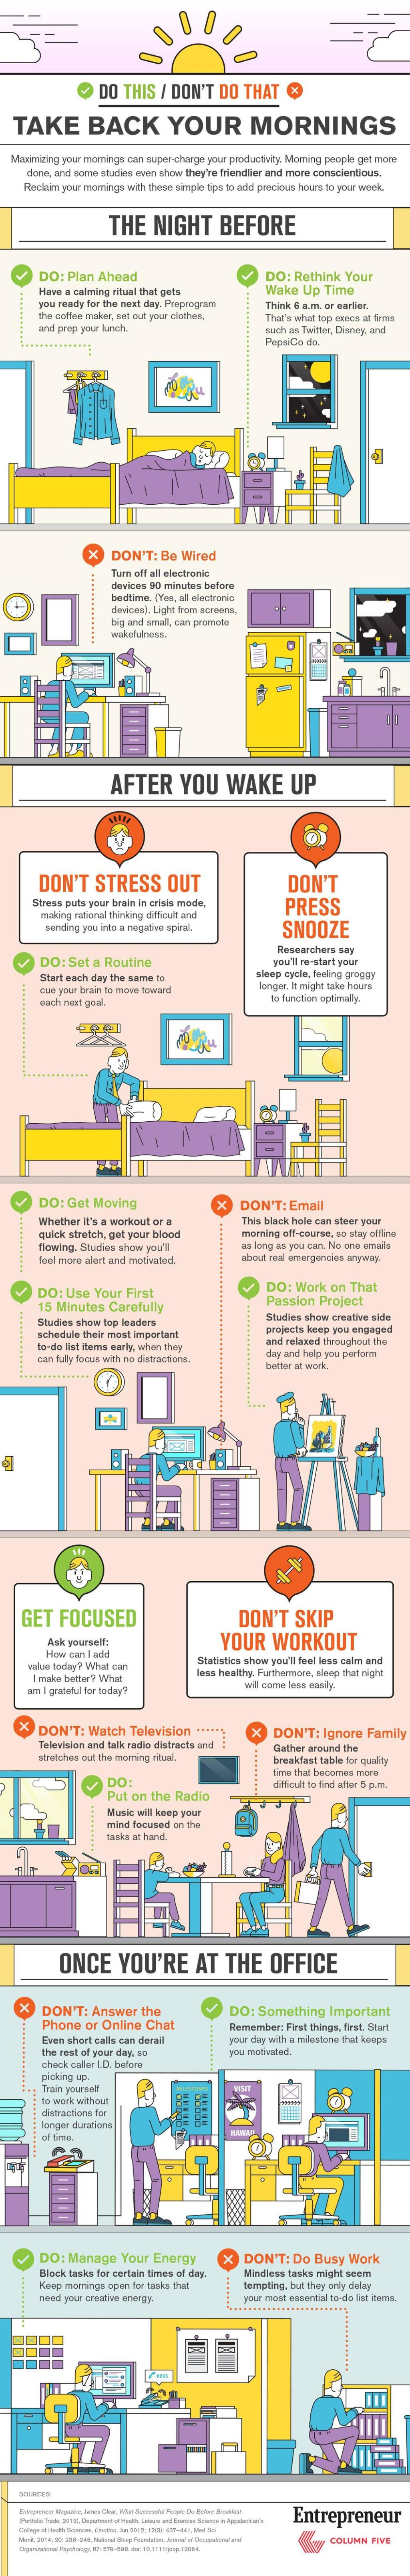 Infographic: Take back your mornings